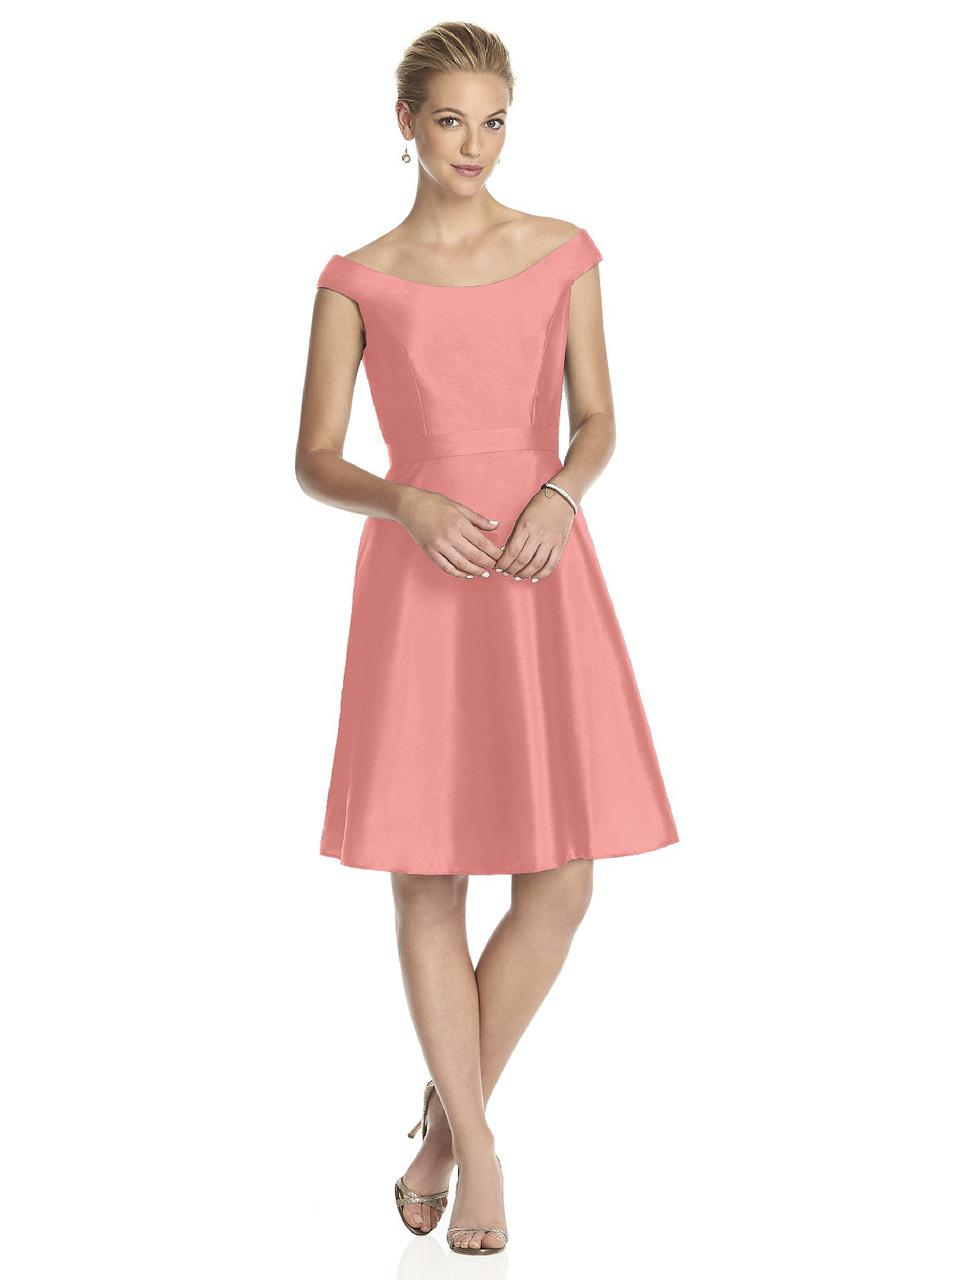 Lyst - Alfred Sung D Bridesmaid Dress In Apricot in Pink - Save 13%